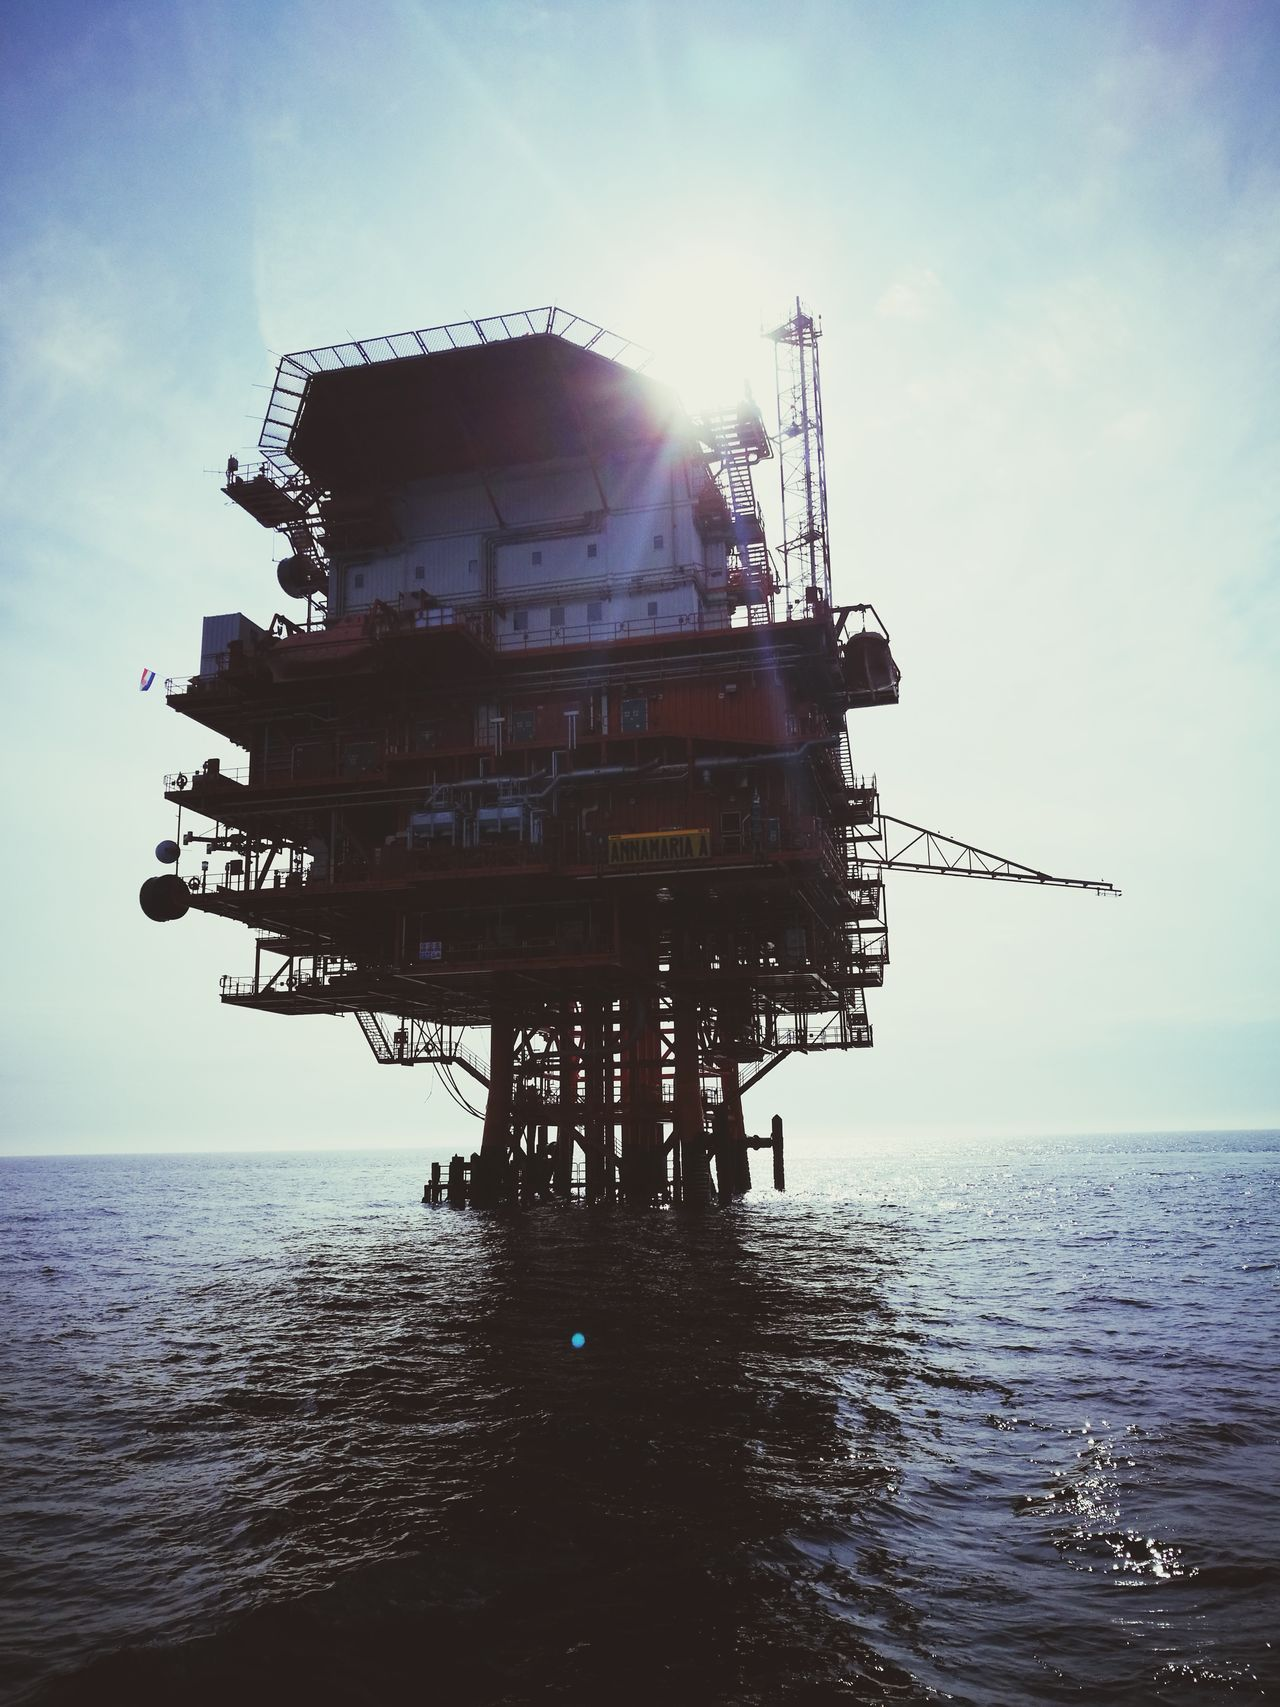 Offshore Platform Gas Oil Industry Adriatic Sea Adriatic FreshonEyeem Oil Industry Croatia Fresh On Eyeem  Day Beauty In Nature Horizon Over Water No People Outdoors Sky Nature Business Finance And Industry Environment Water Oil&water Sea Oil&gas